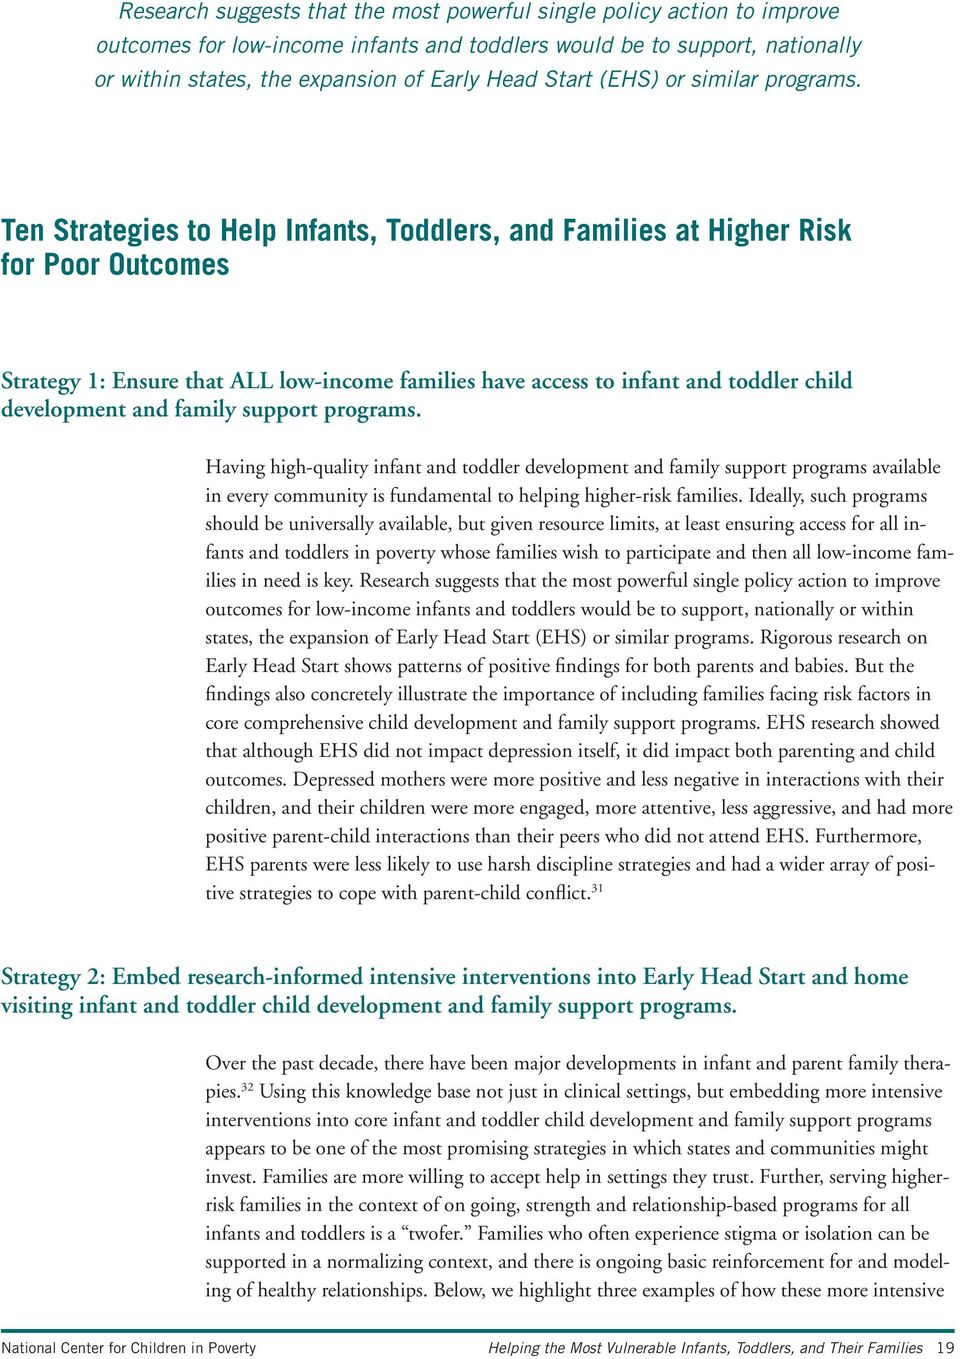 Ten Strategies to Help Infants, Toddlers, and Families at Higher Risk for Poor Outcomes Strategy 1: Ensure that ALL low-income families have access to infant and toddler child development and family